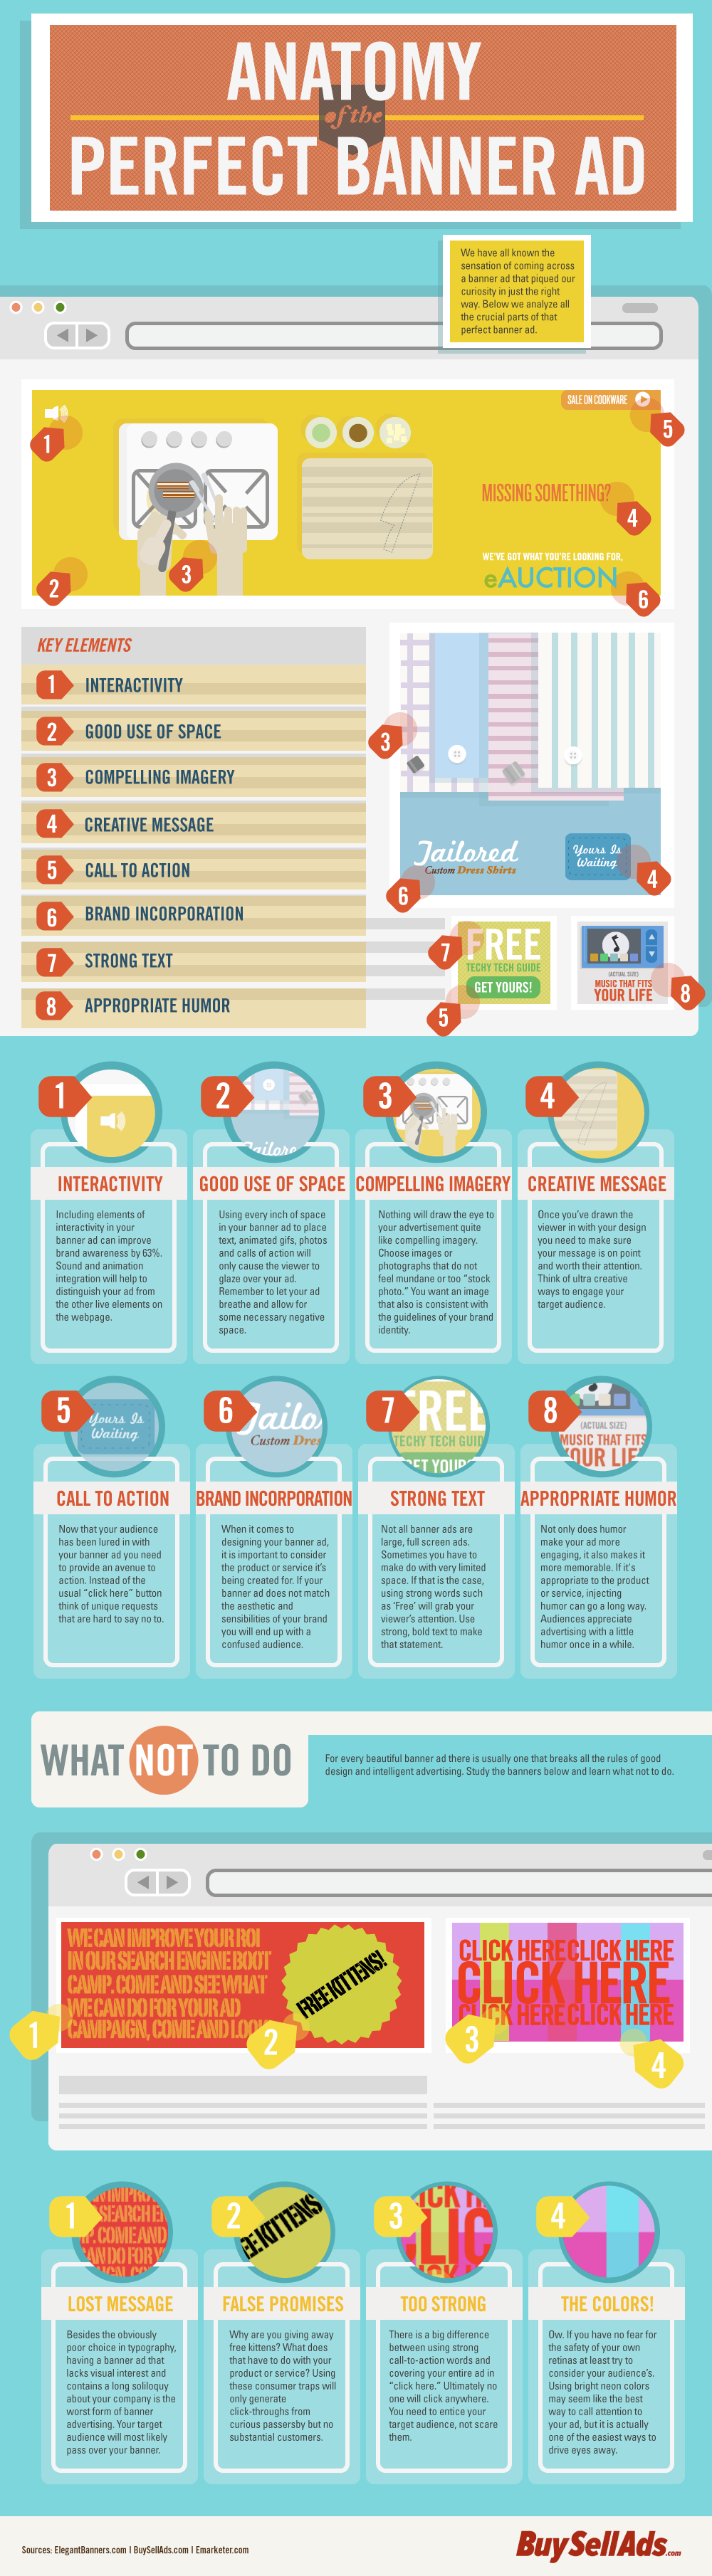 Anatomy of a Perfect Banner Ad